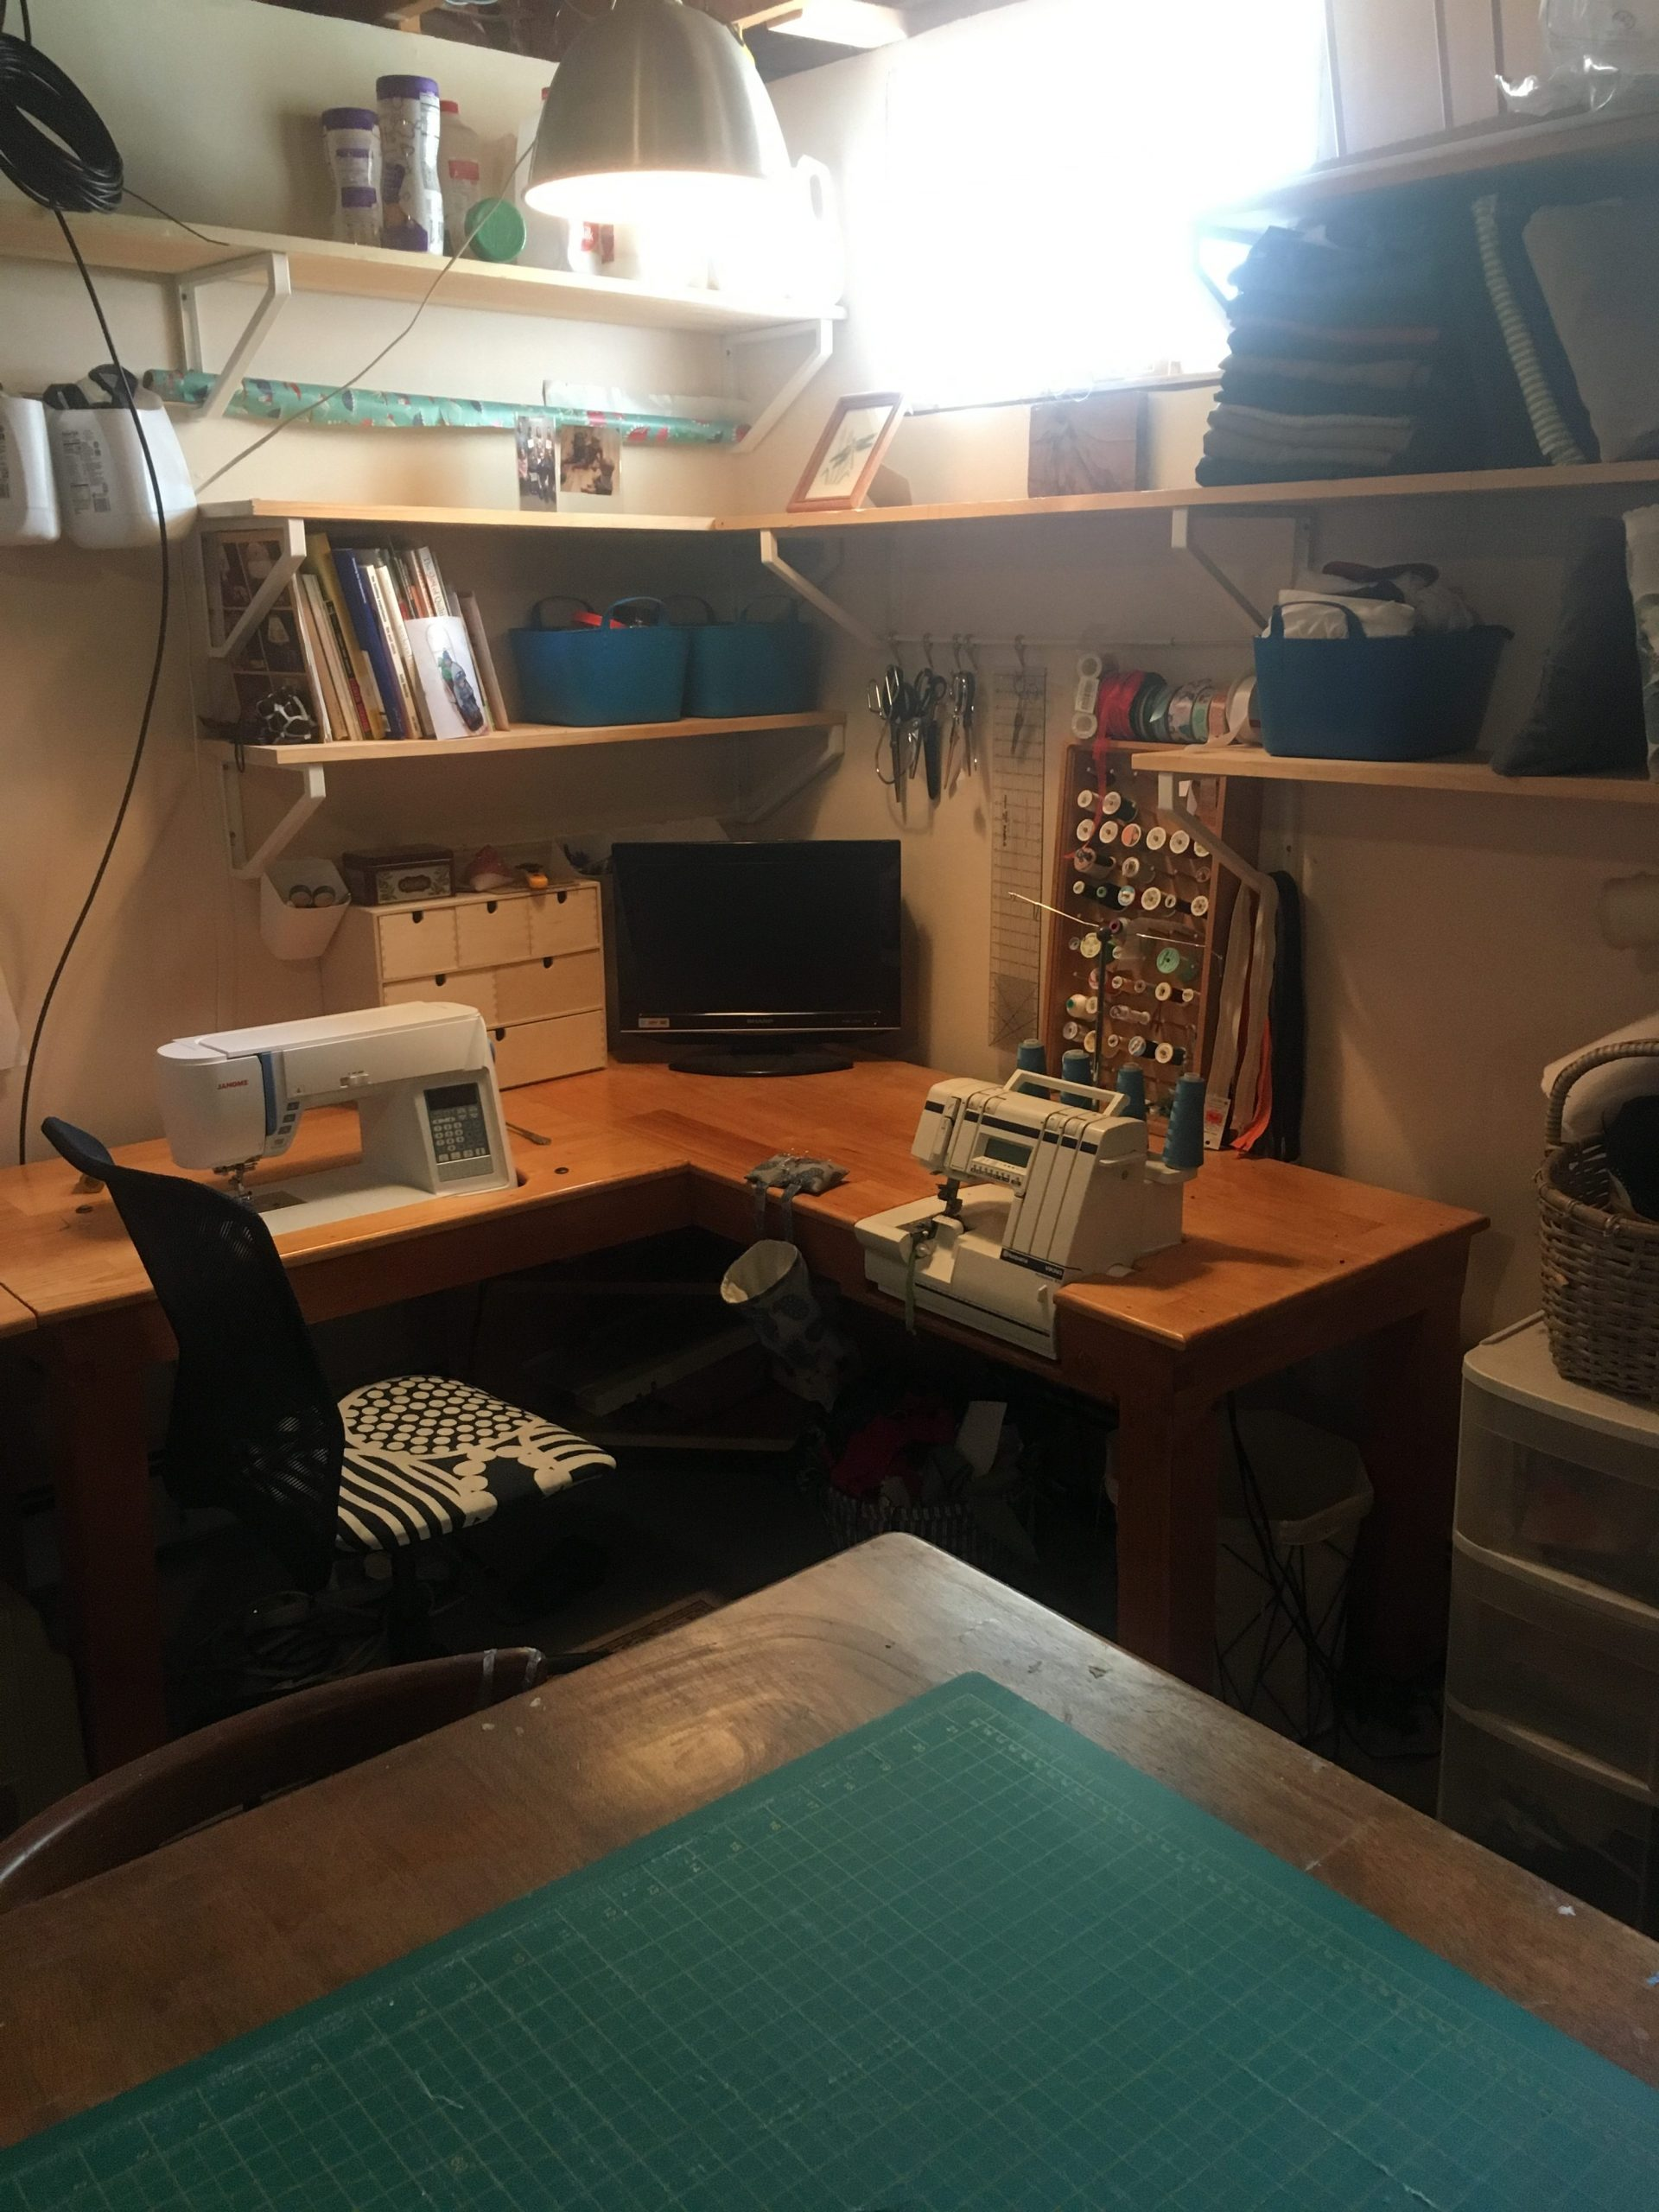 packing up the sewing room